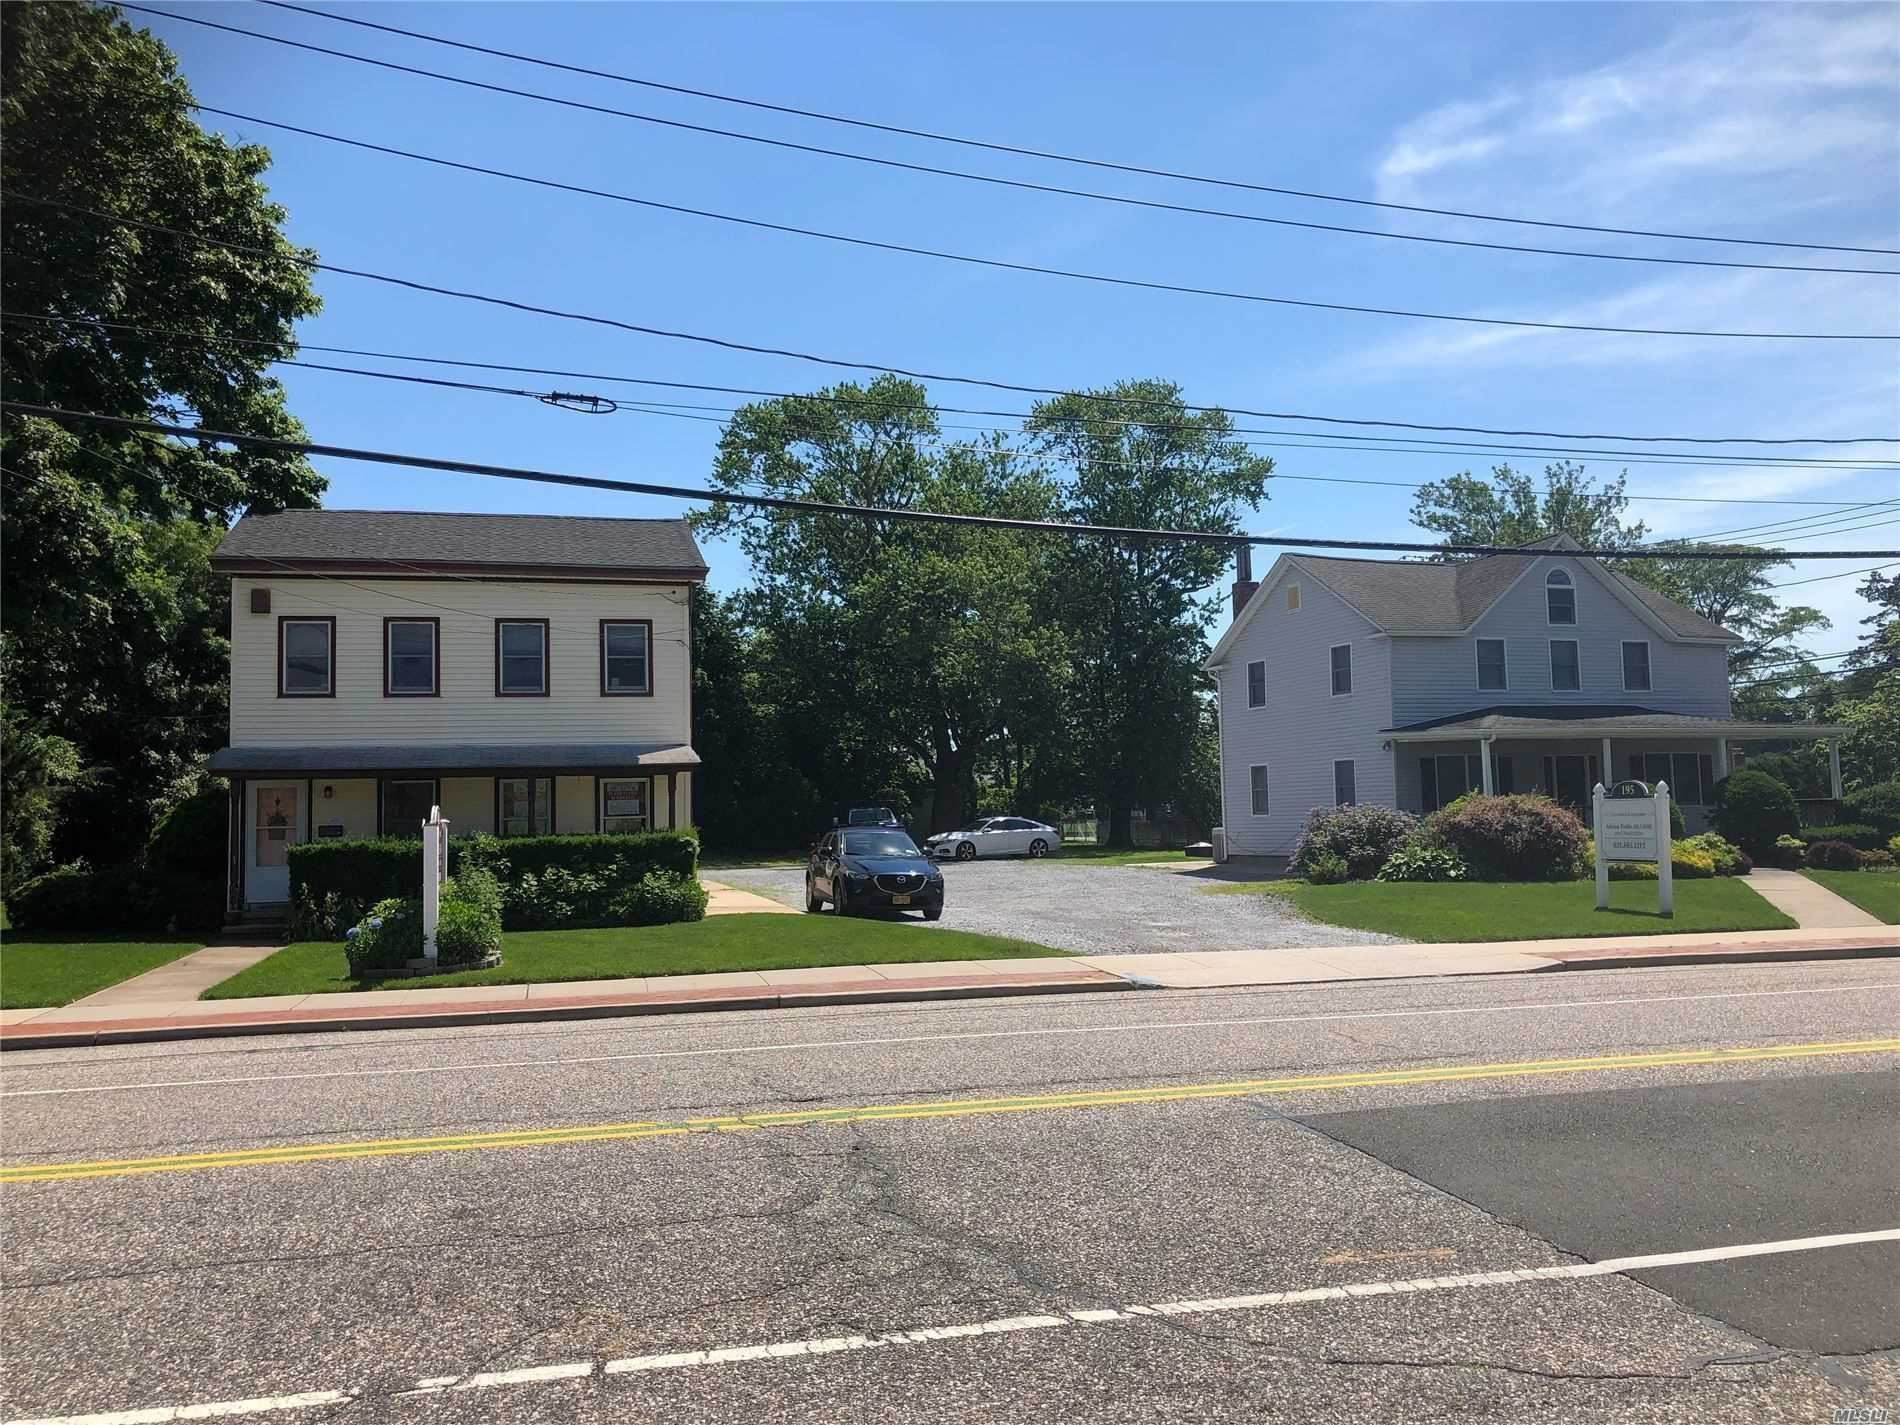 195\/199 Blue Point Avenue, Blue Point, NY 11715 - MLS#: 3187959